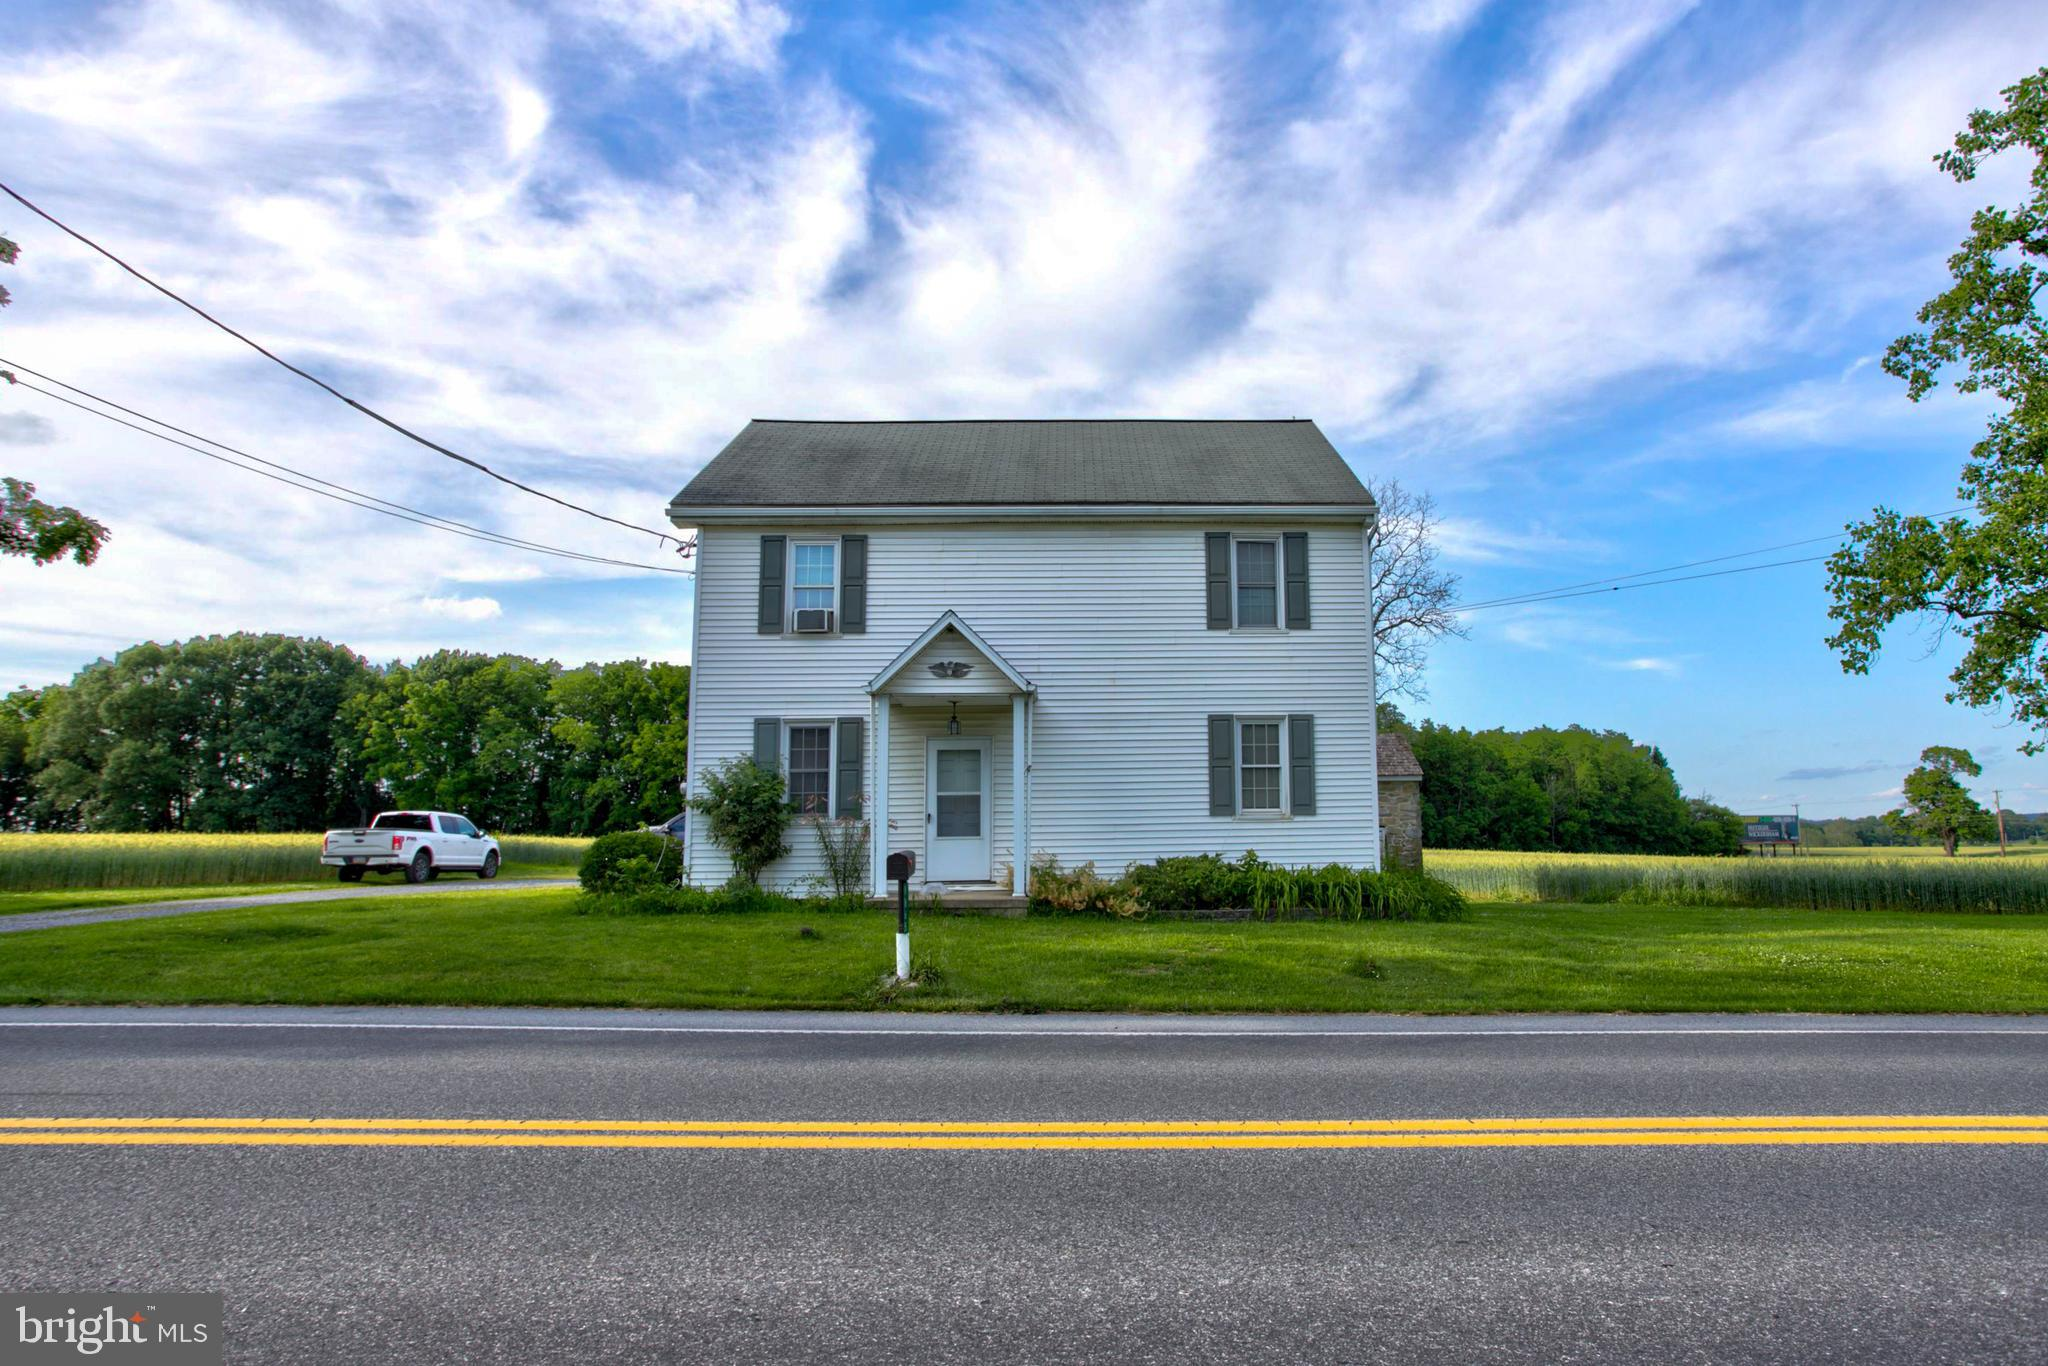 1865 GRAYSTONE ROAD, MANHEIM, PA 17545